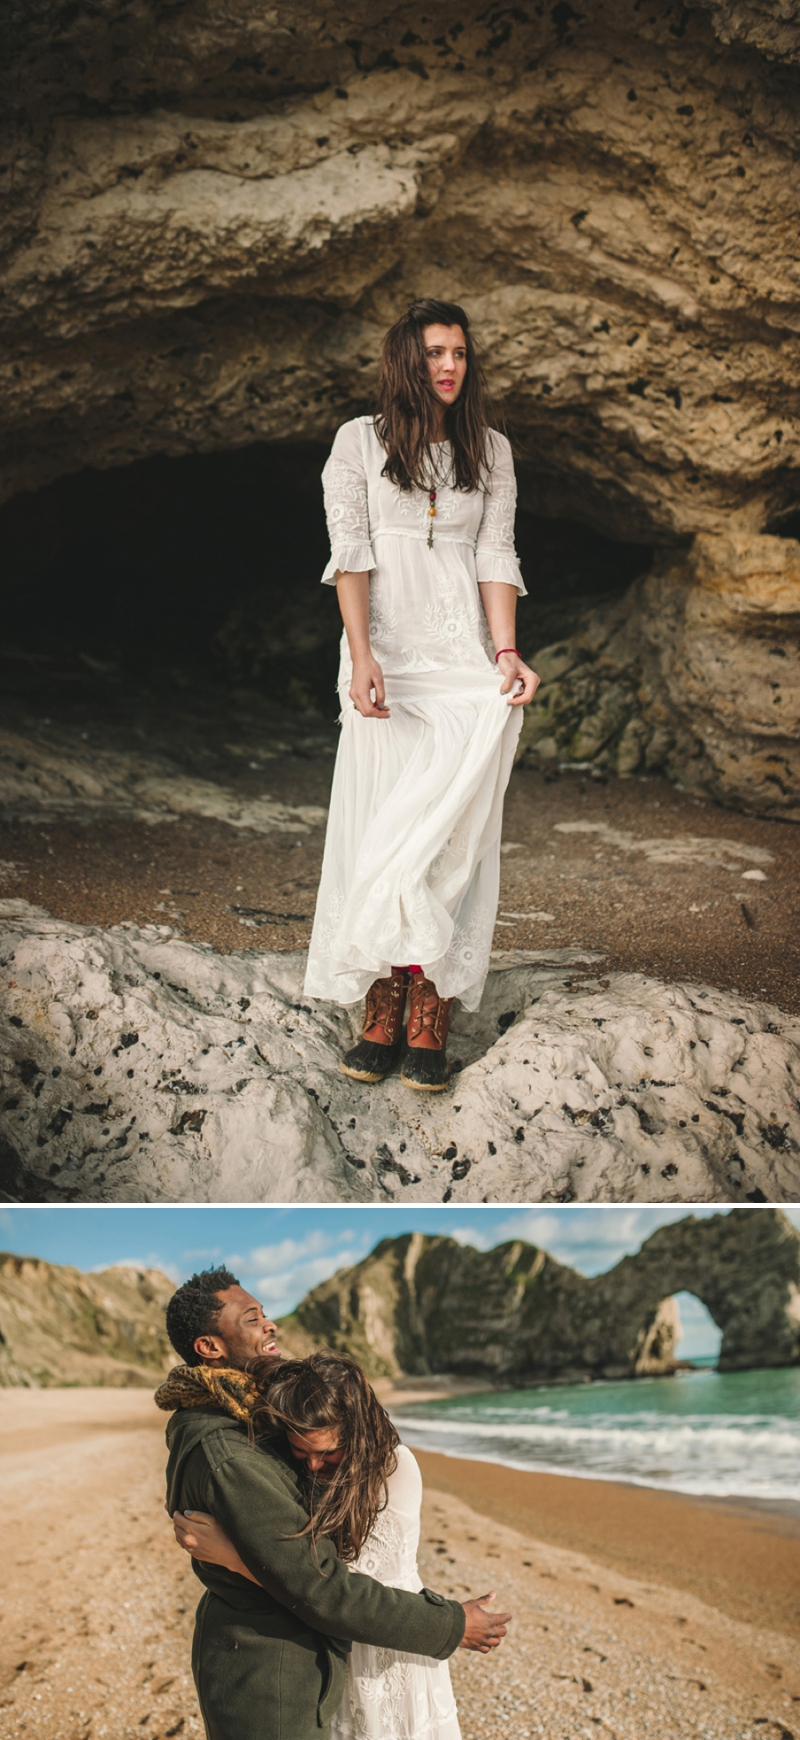 A coastal engagement shoot by Rebekah Murray 0556 A Magical Day.